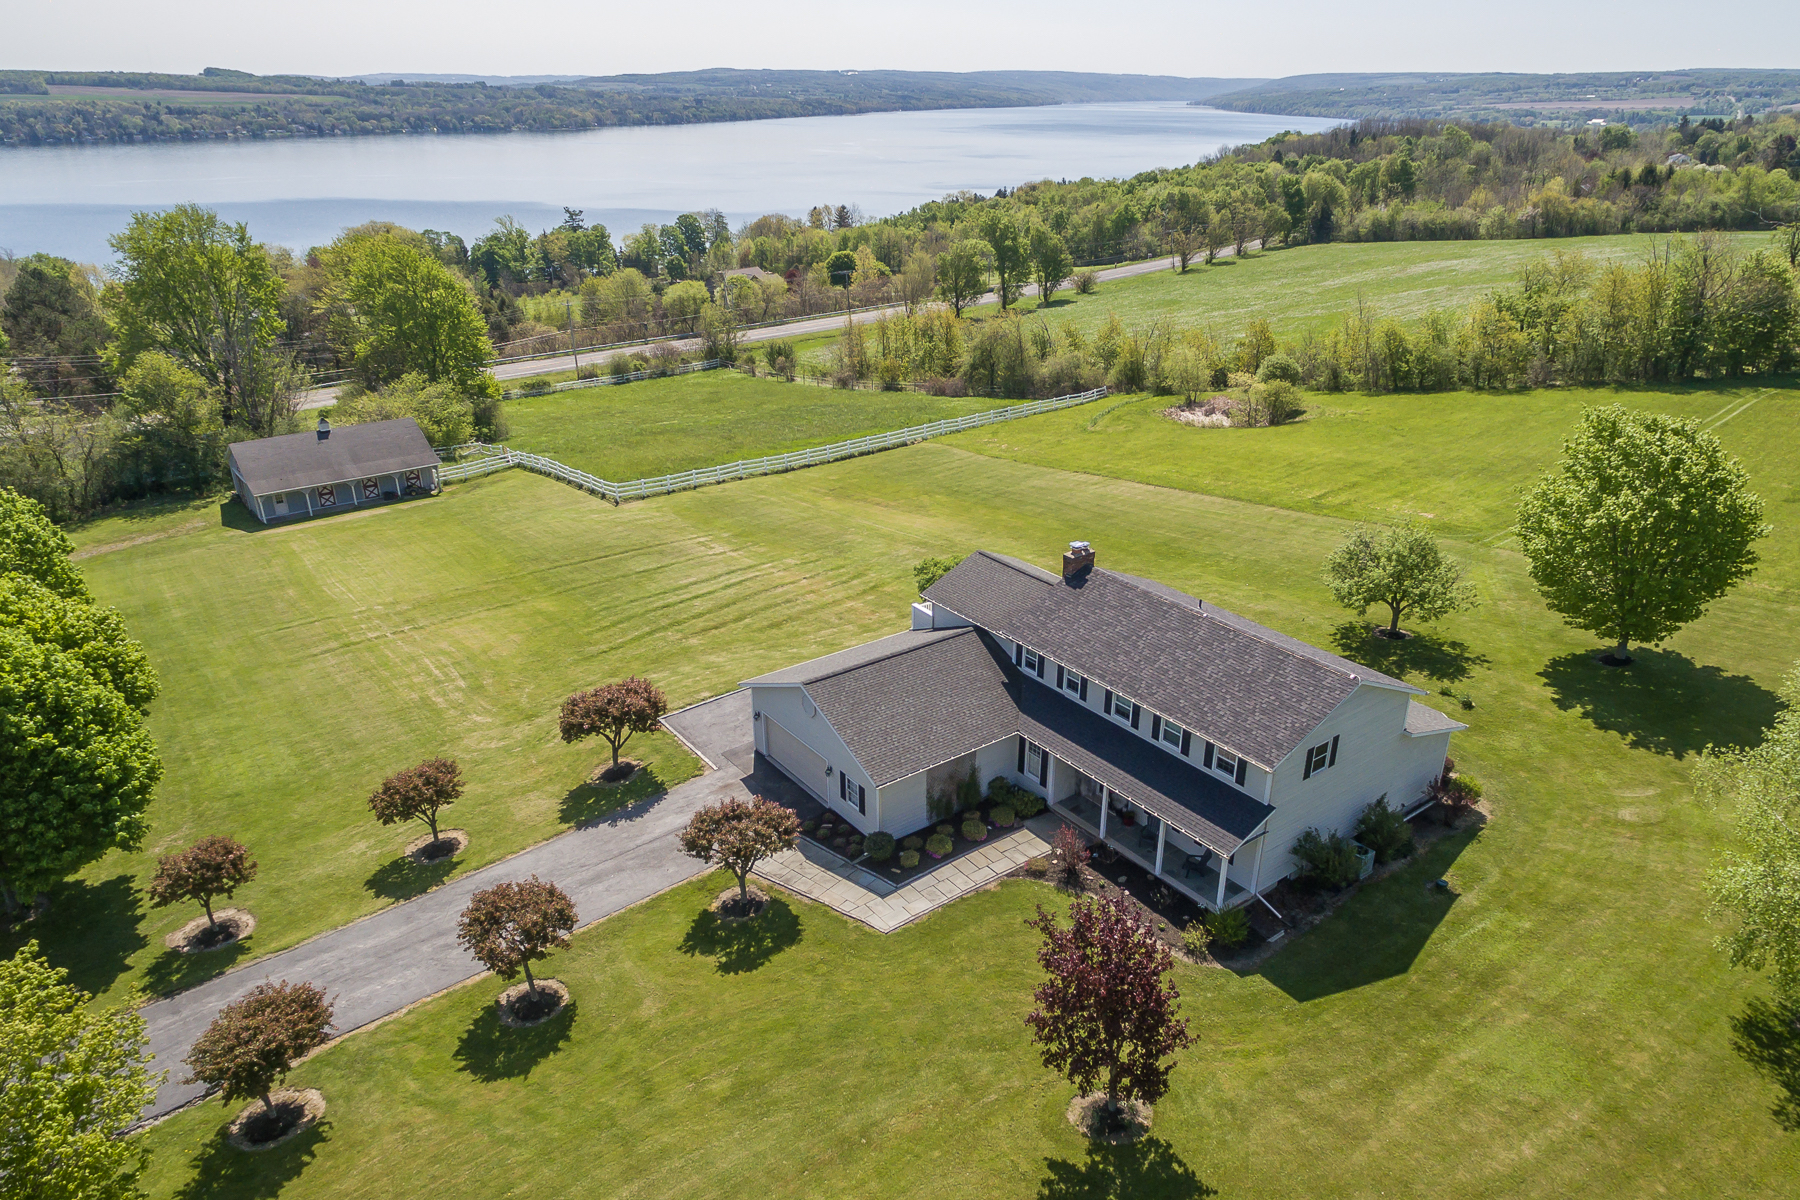 独户住宅 为 销售 在 Skaneateles Lake Views on 5.5 Acres 1300 Hencoop Rd Skaneateles, 13152 美国